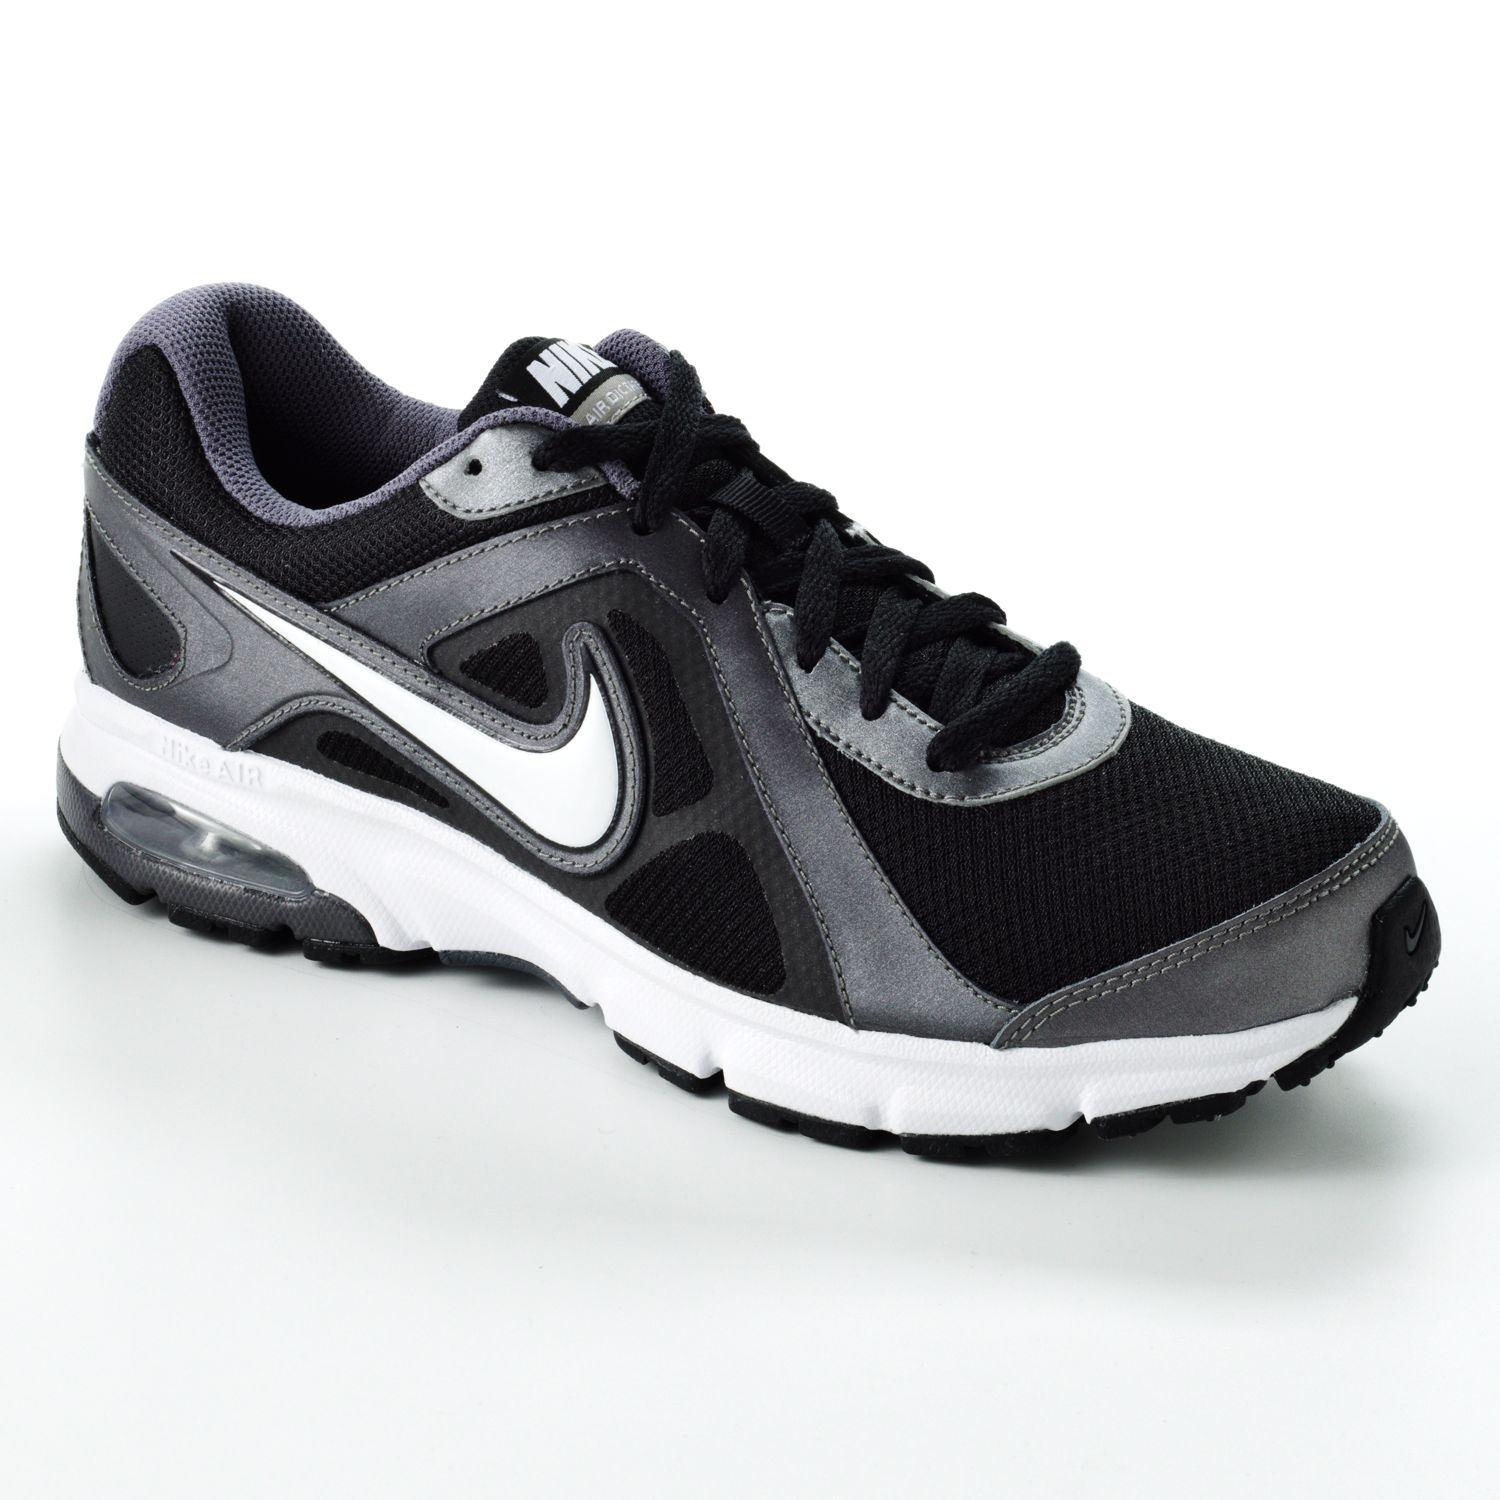 Nike Black Air Dictate 2 High-Performance Running Shoes - Men